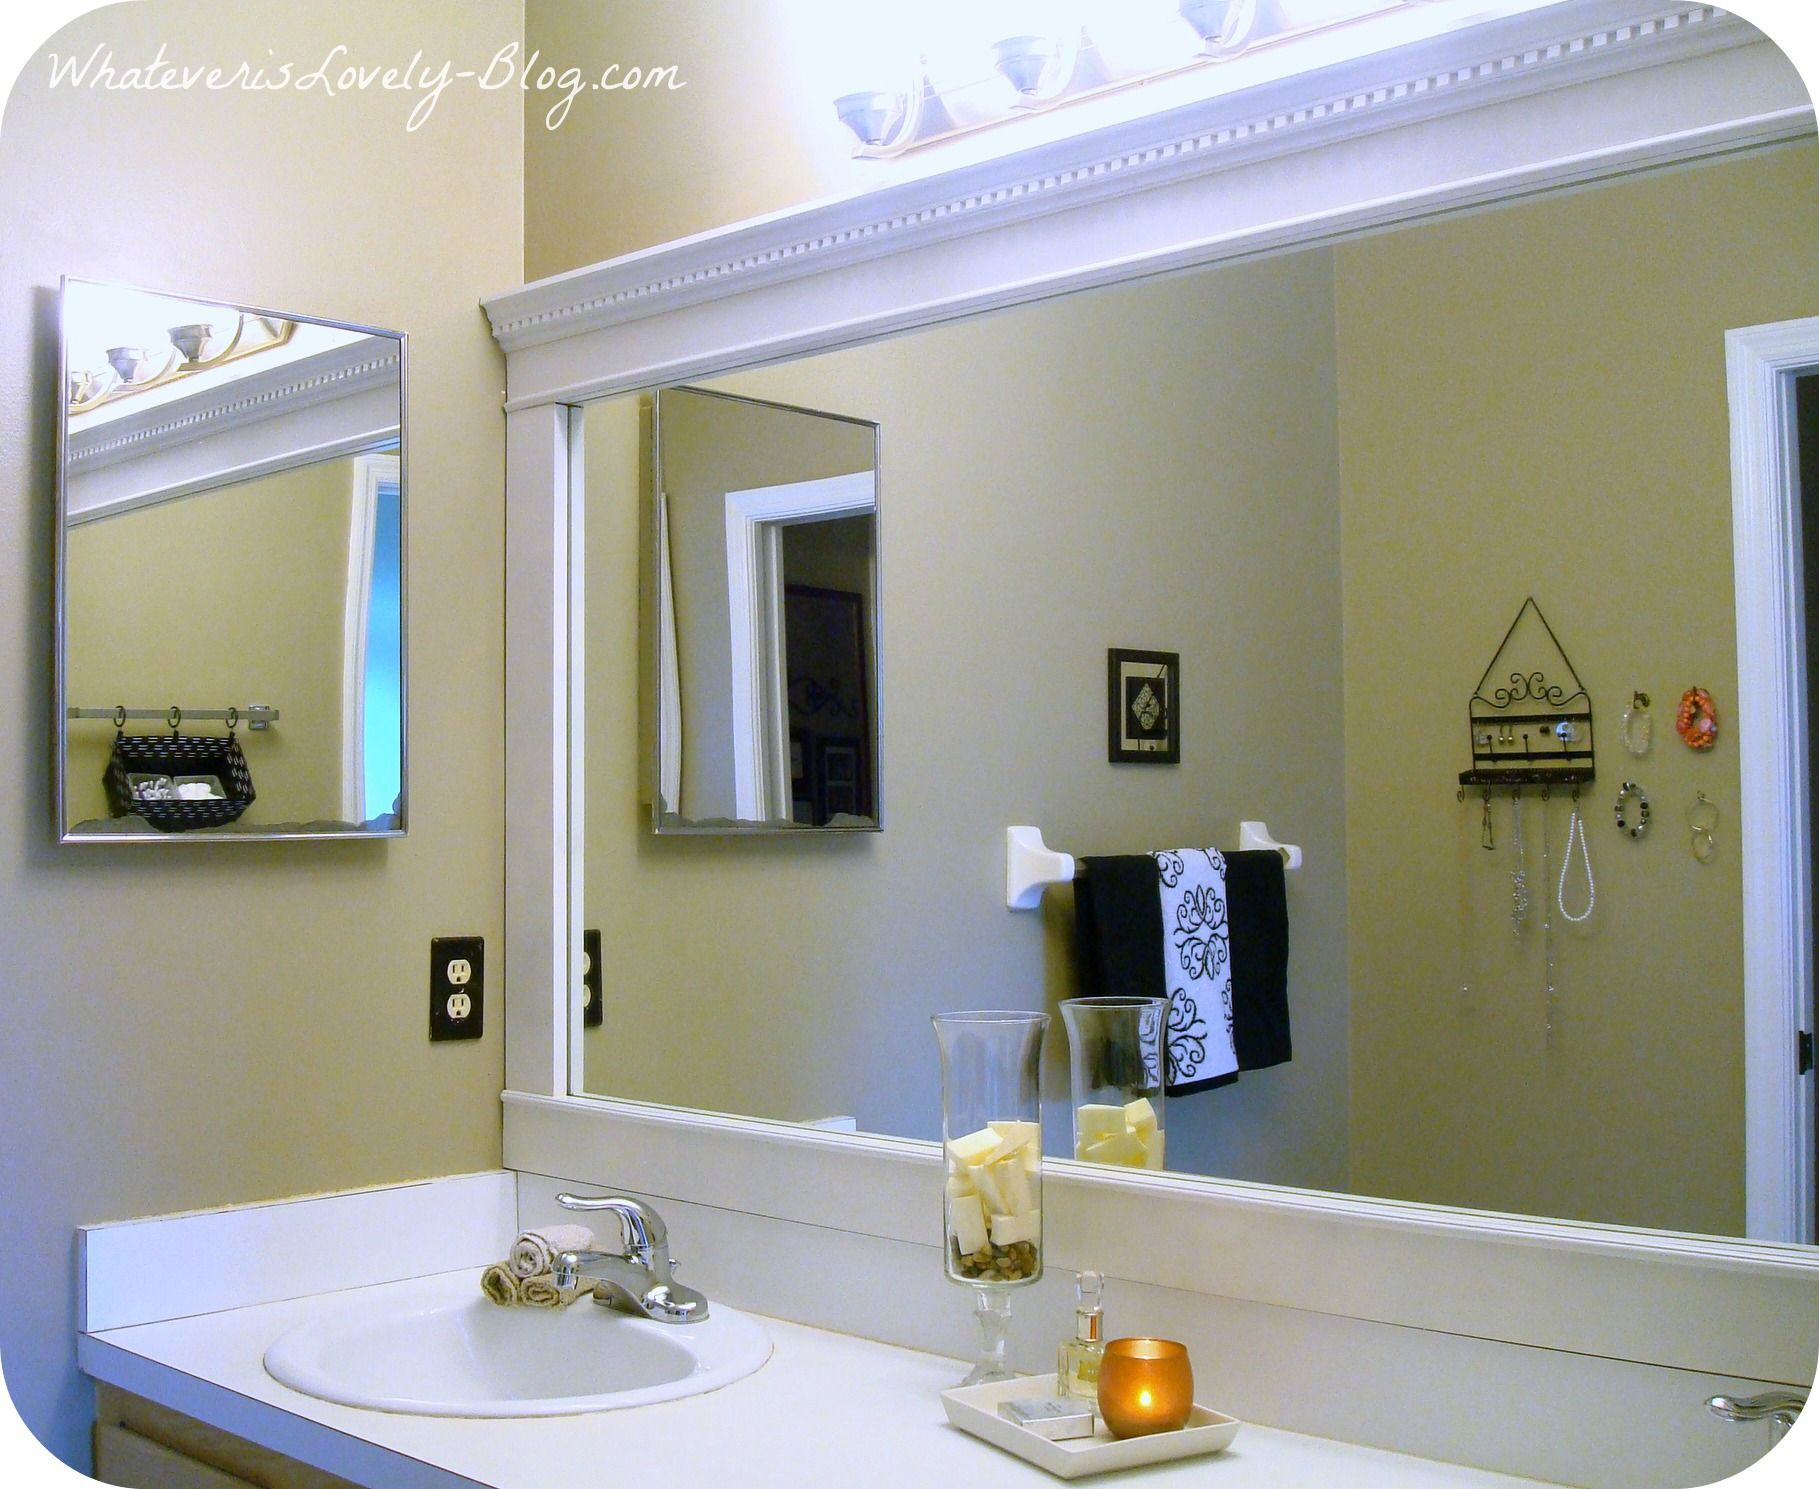 framing a large bathroom mirror | Home Ownership | Pinterest